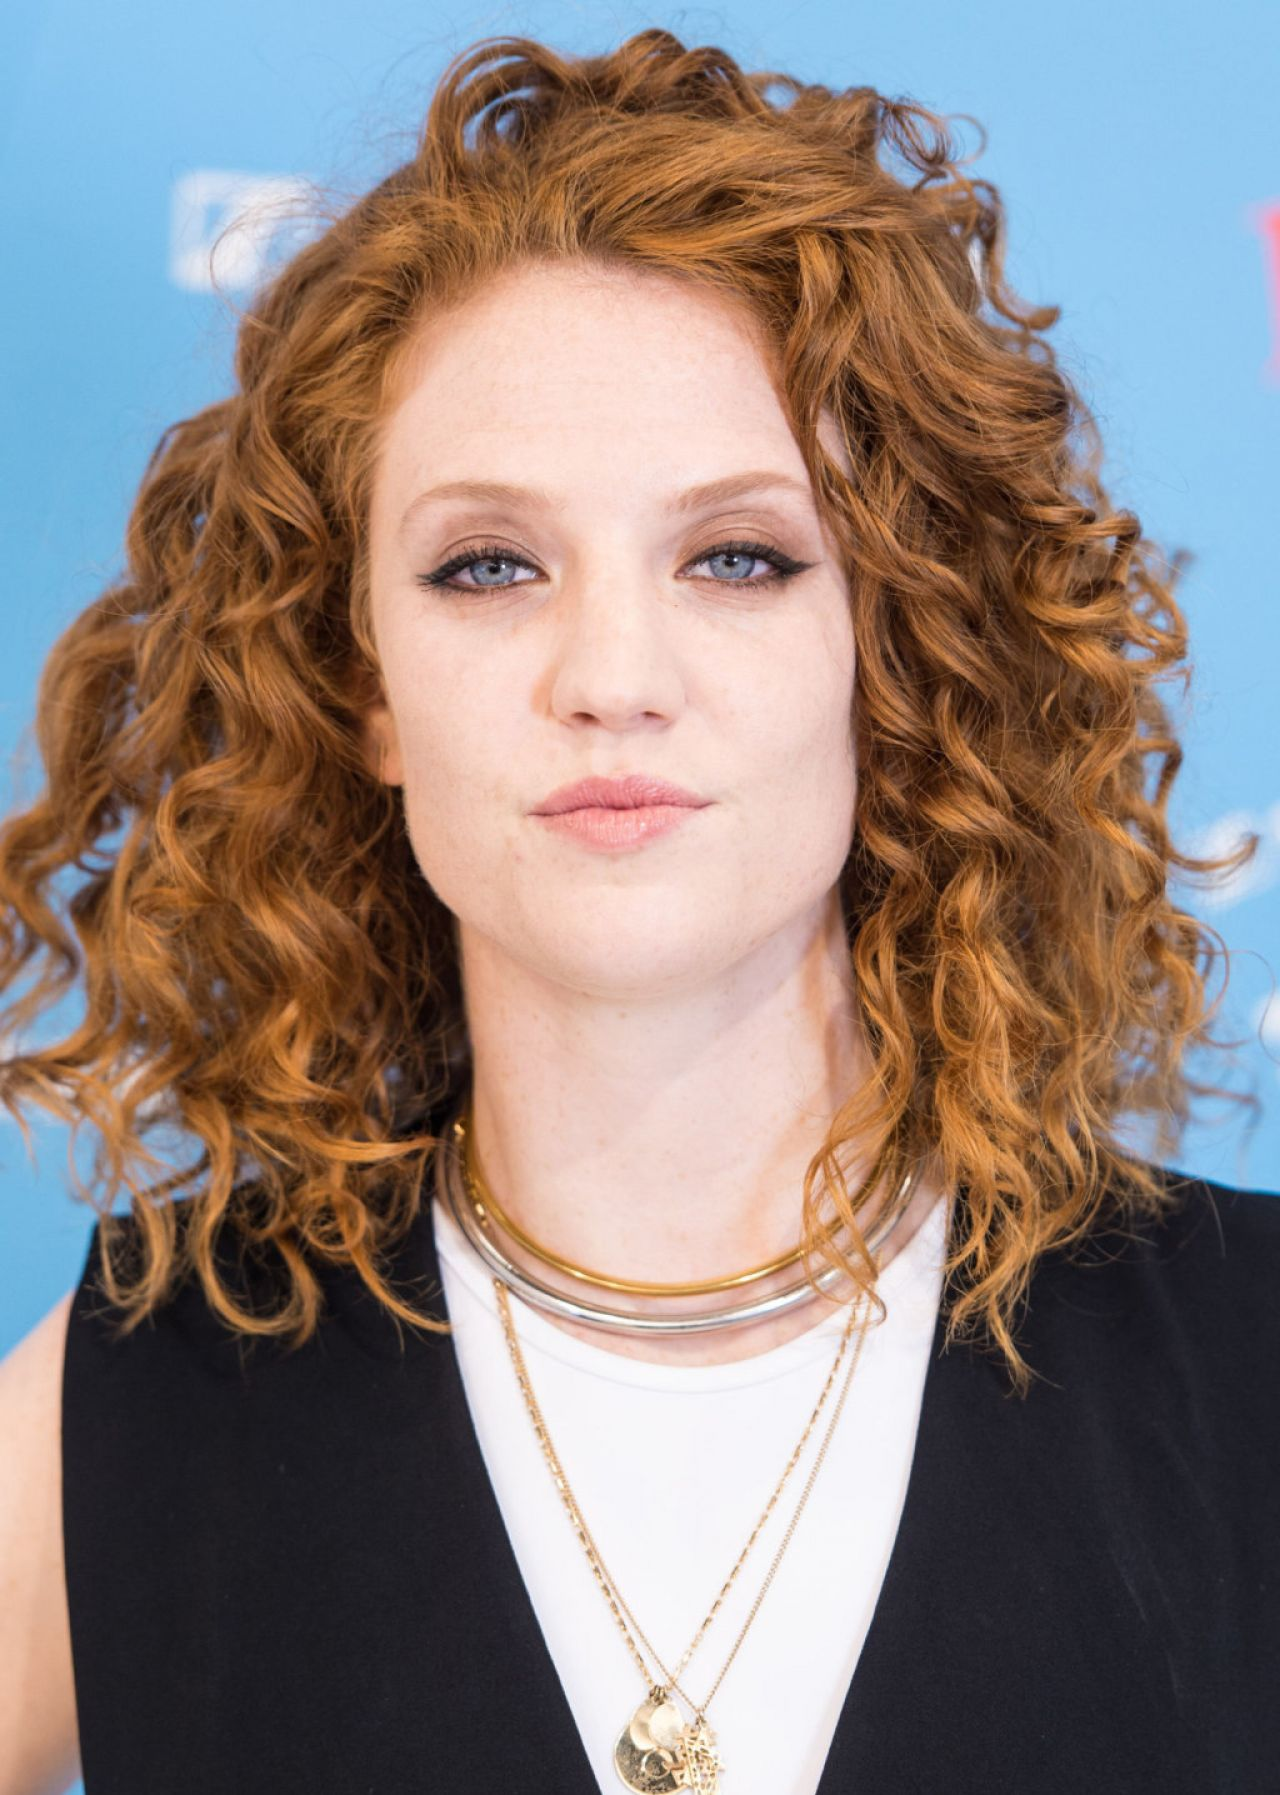 Images Jess Glynne nudes (63 photo), Fappening